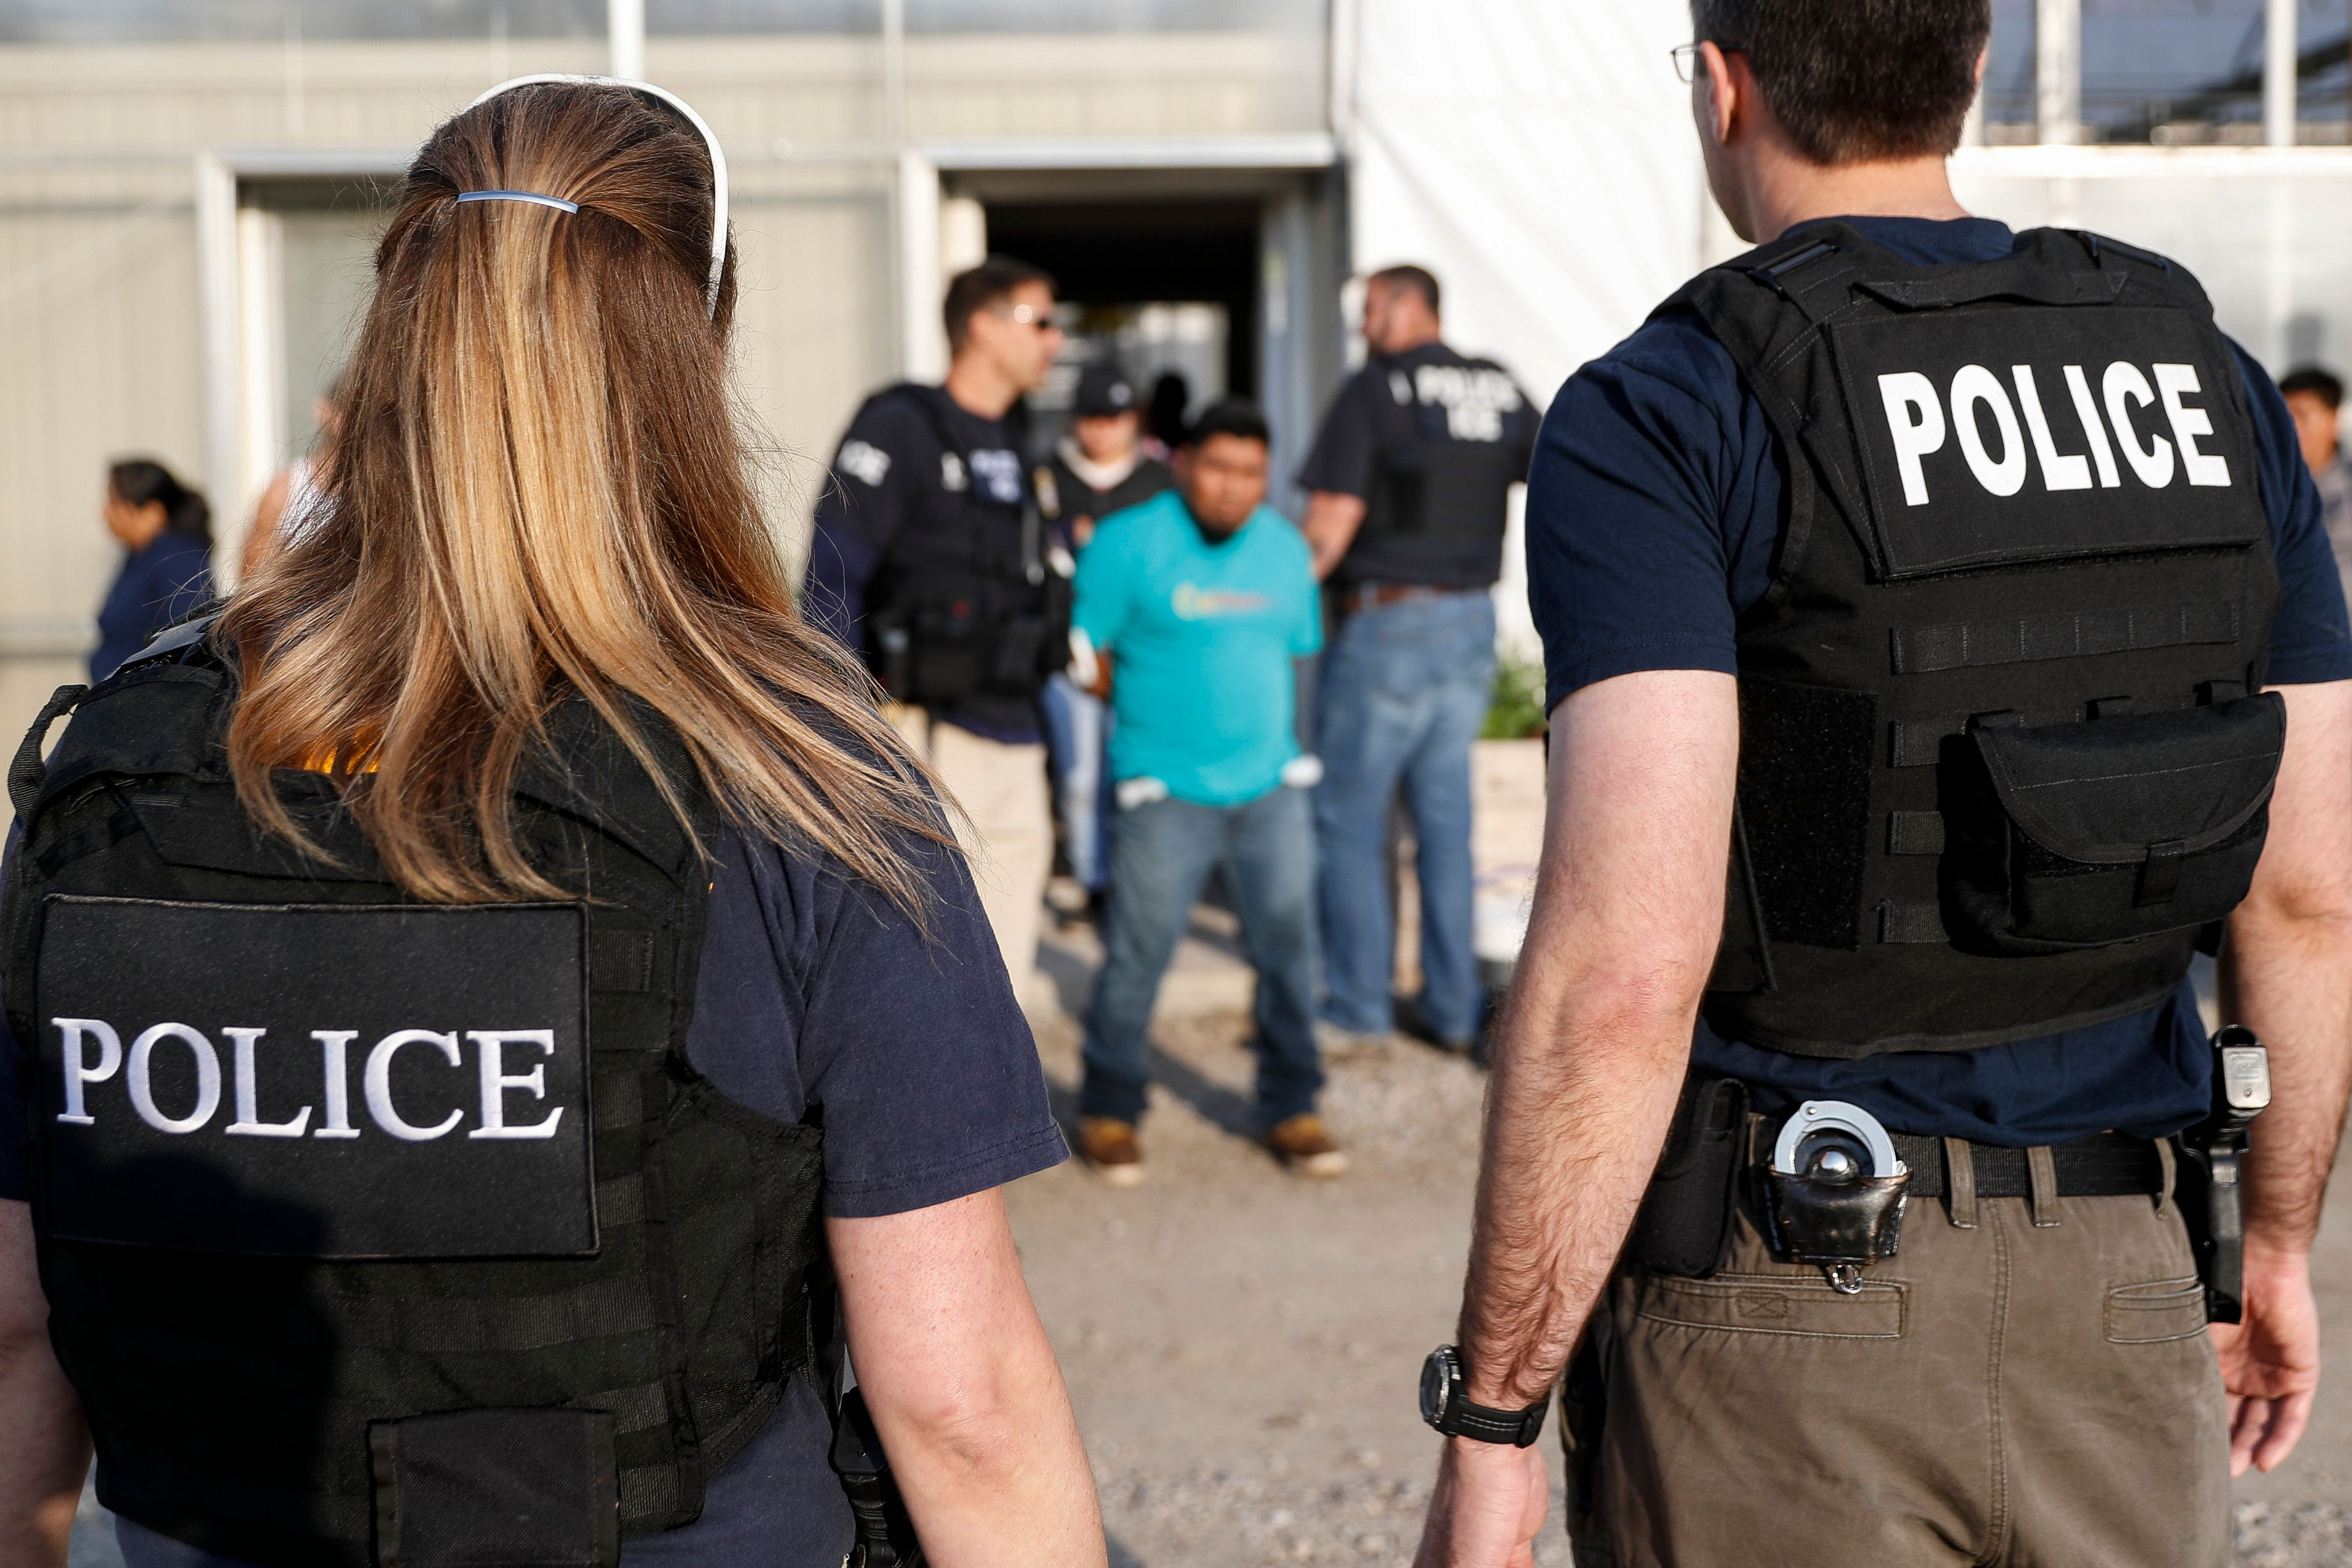 ICE Dramatically Increased Workplace Arrests Of Undocumented Immigrants In 2018